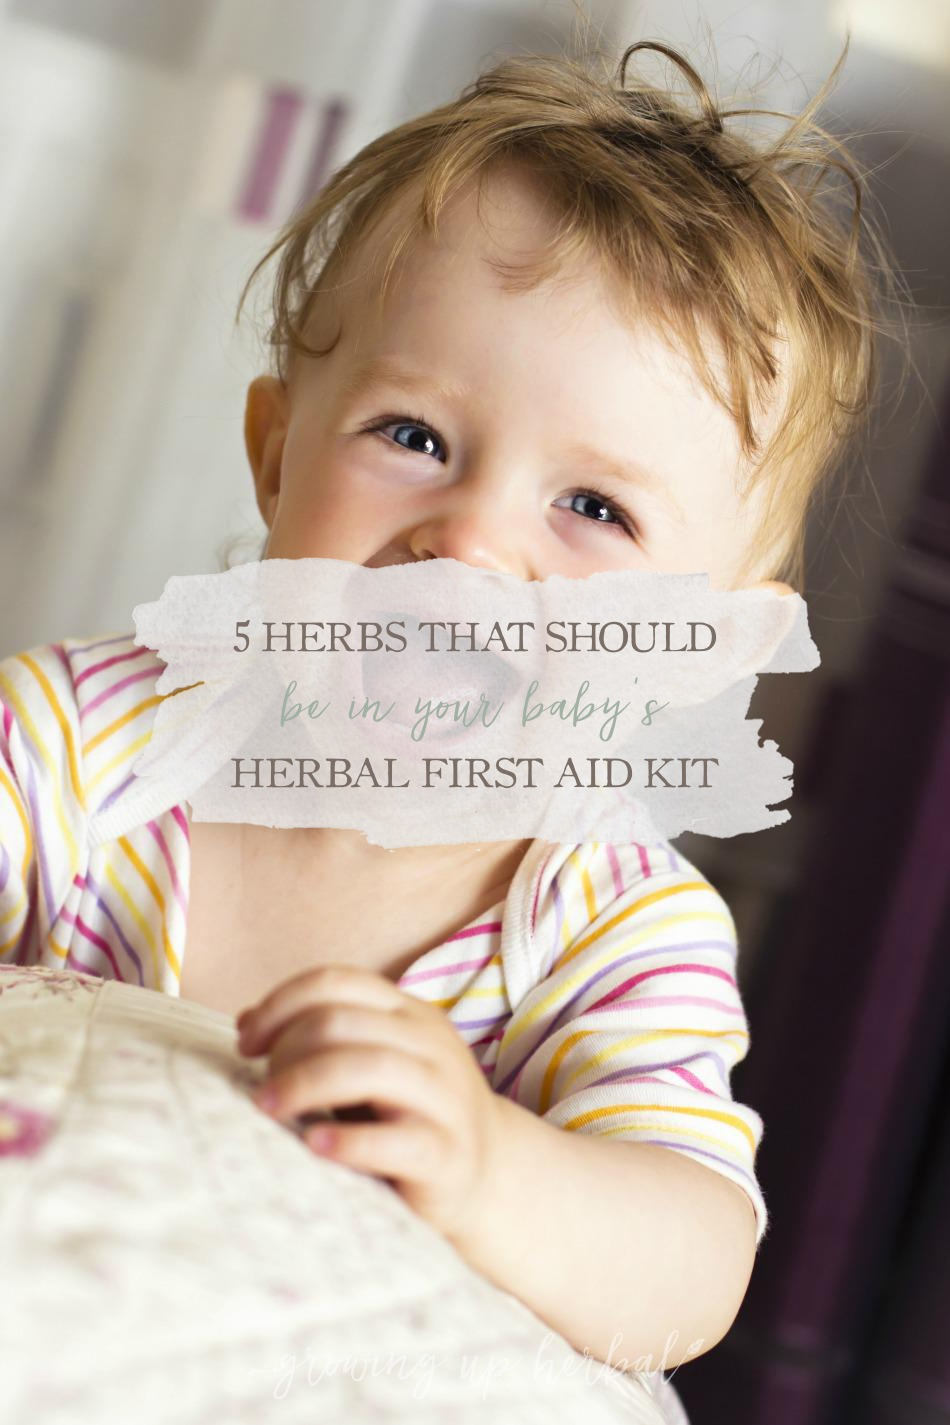 5 Herbs That Should Be In Your Baby's Herbal First Aid Kit | Growing Up Herbal | Looking for herbs for your baby's herbal first aid kit? Here are my top 5 picks!